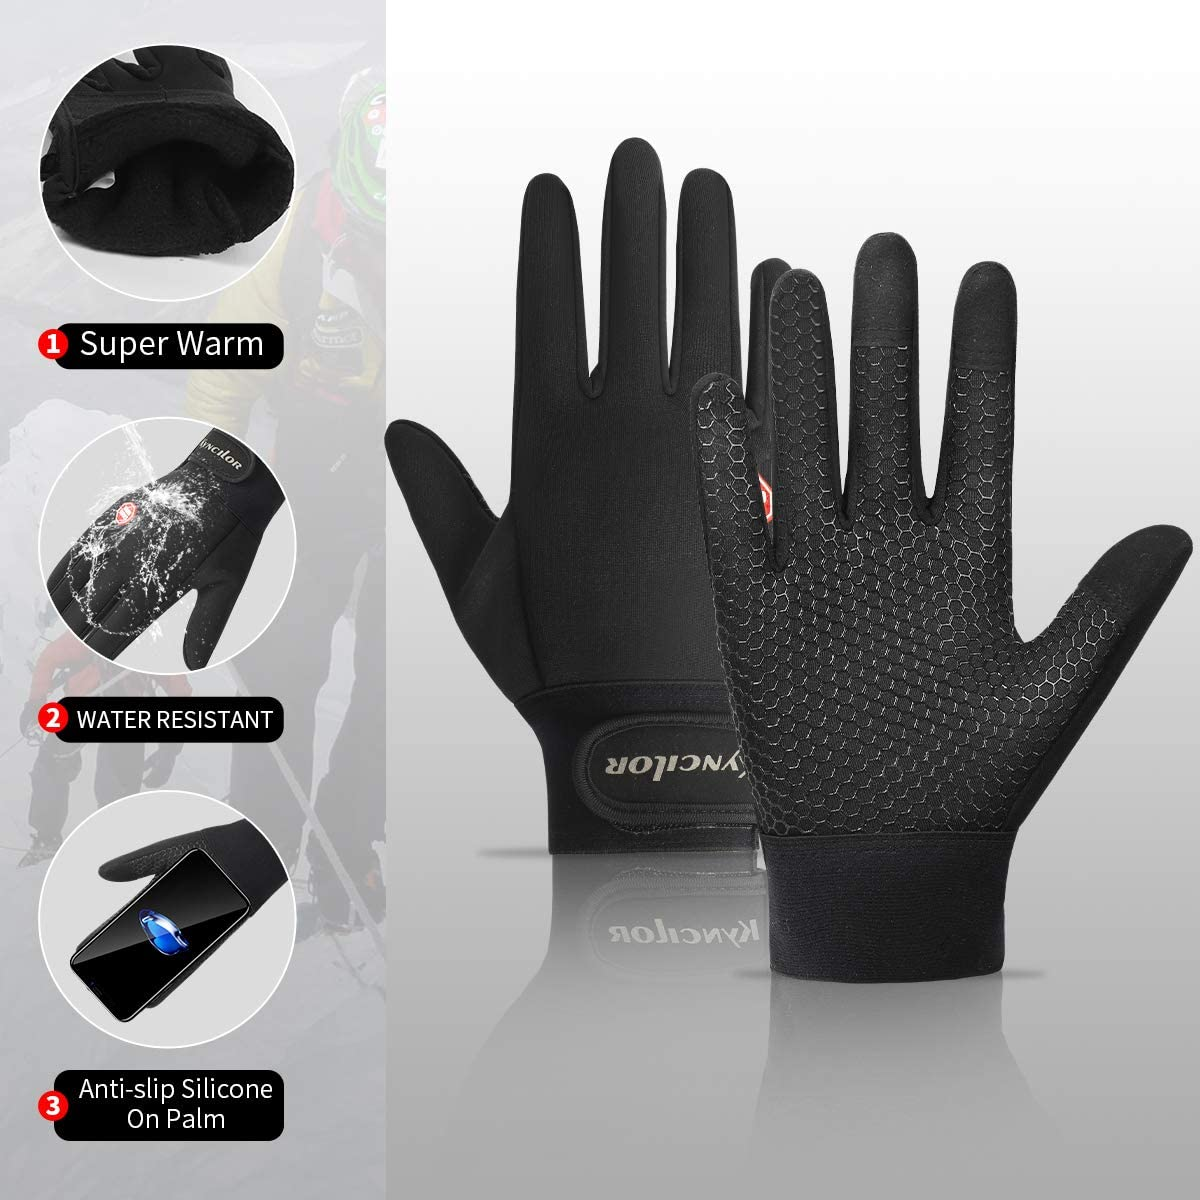 Driving Skiing Outdoor Sports Winter Running Gloves Touchscreen Thermal Gloves Men Women Winter Windproof /& Waterproof Gloves Snow Warm Gloves Liners for Running Cycling